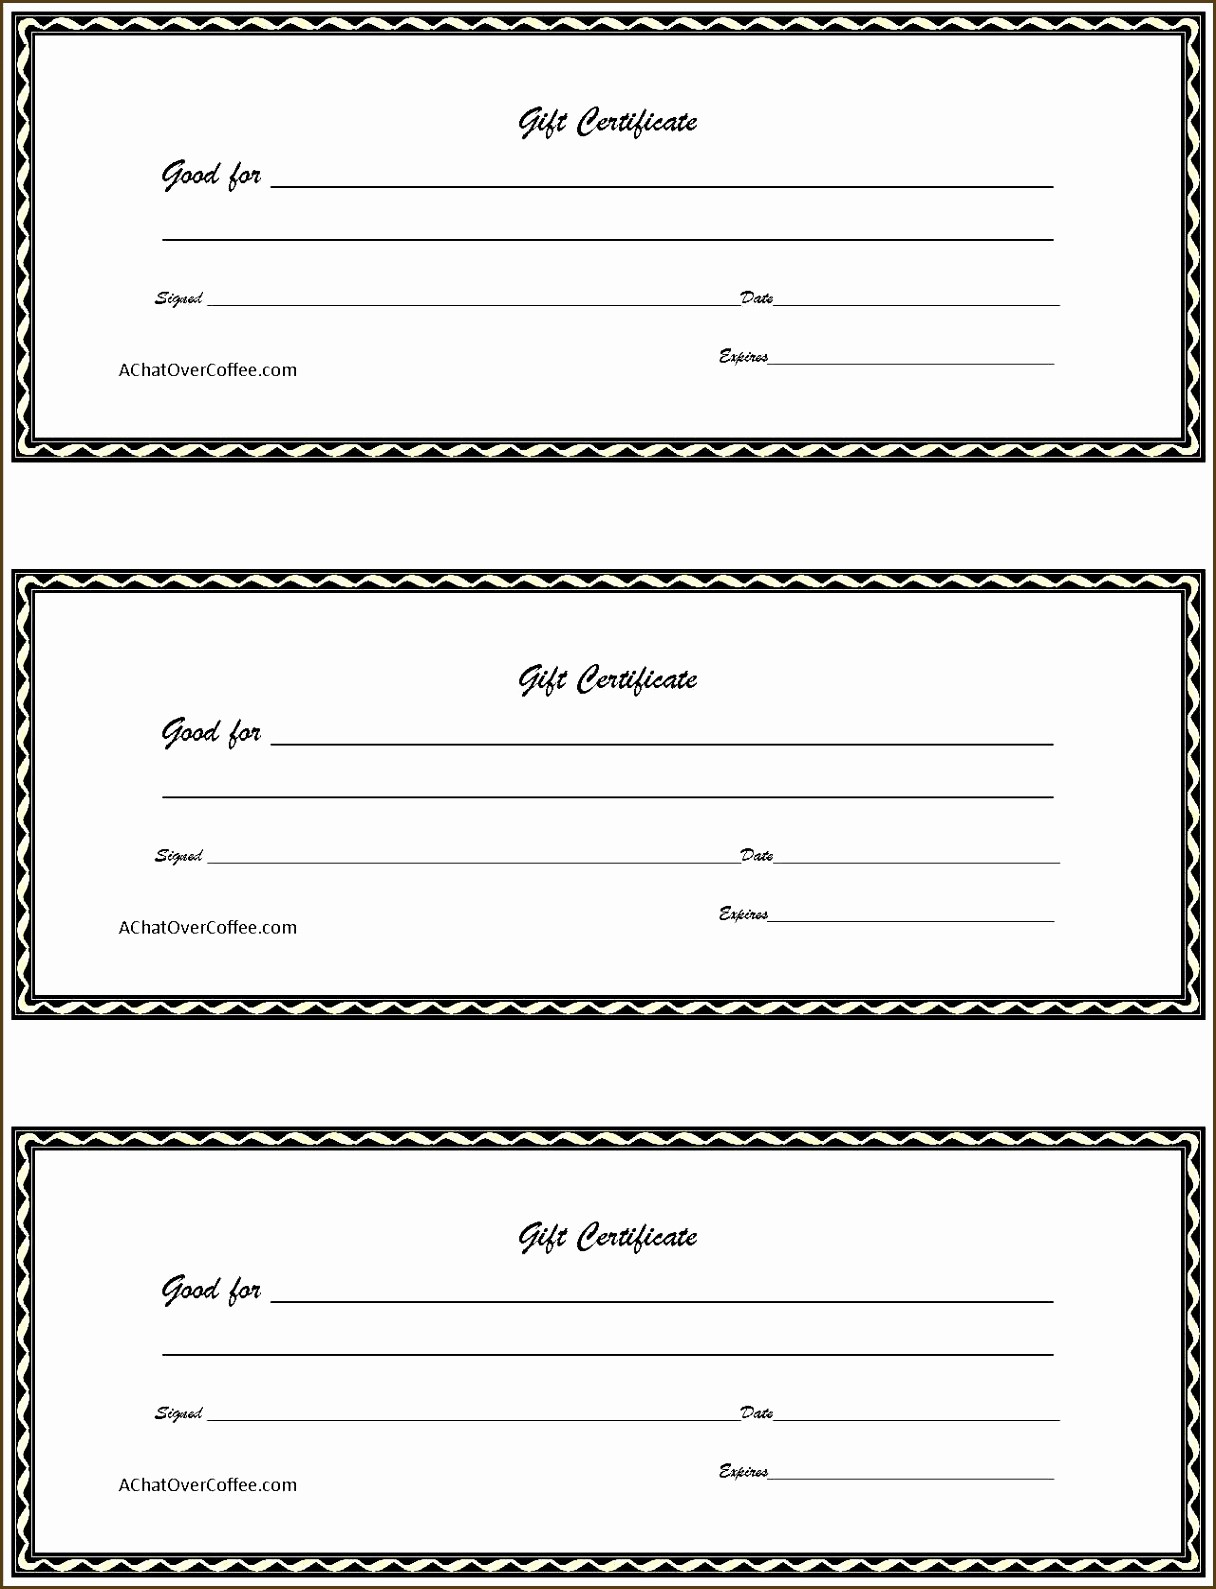 Blank Gift Certificates to Print Inspirational 20 Free Gift Certificate Template